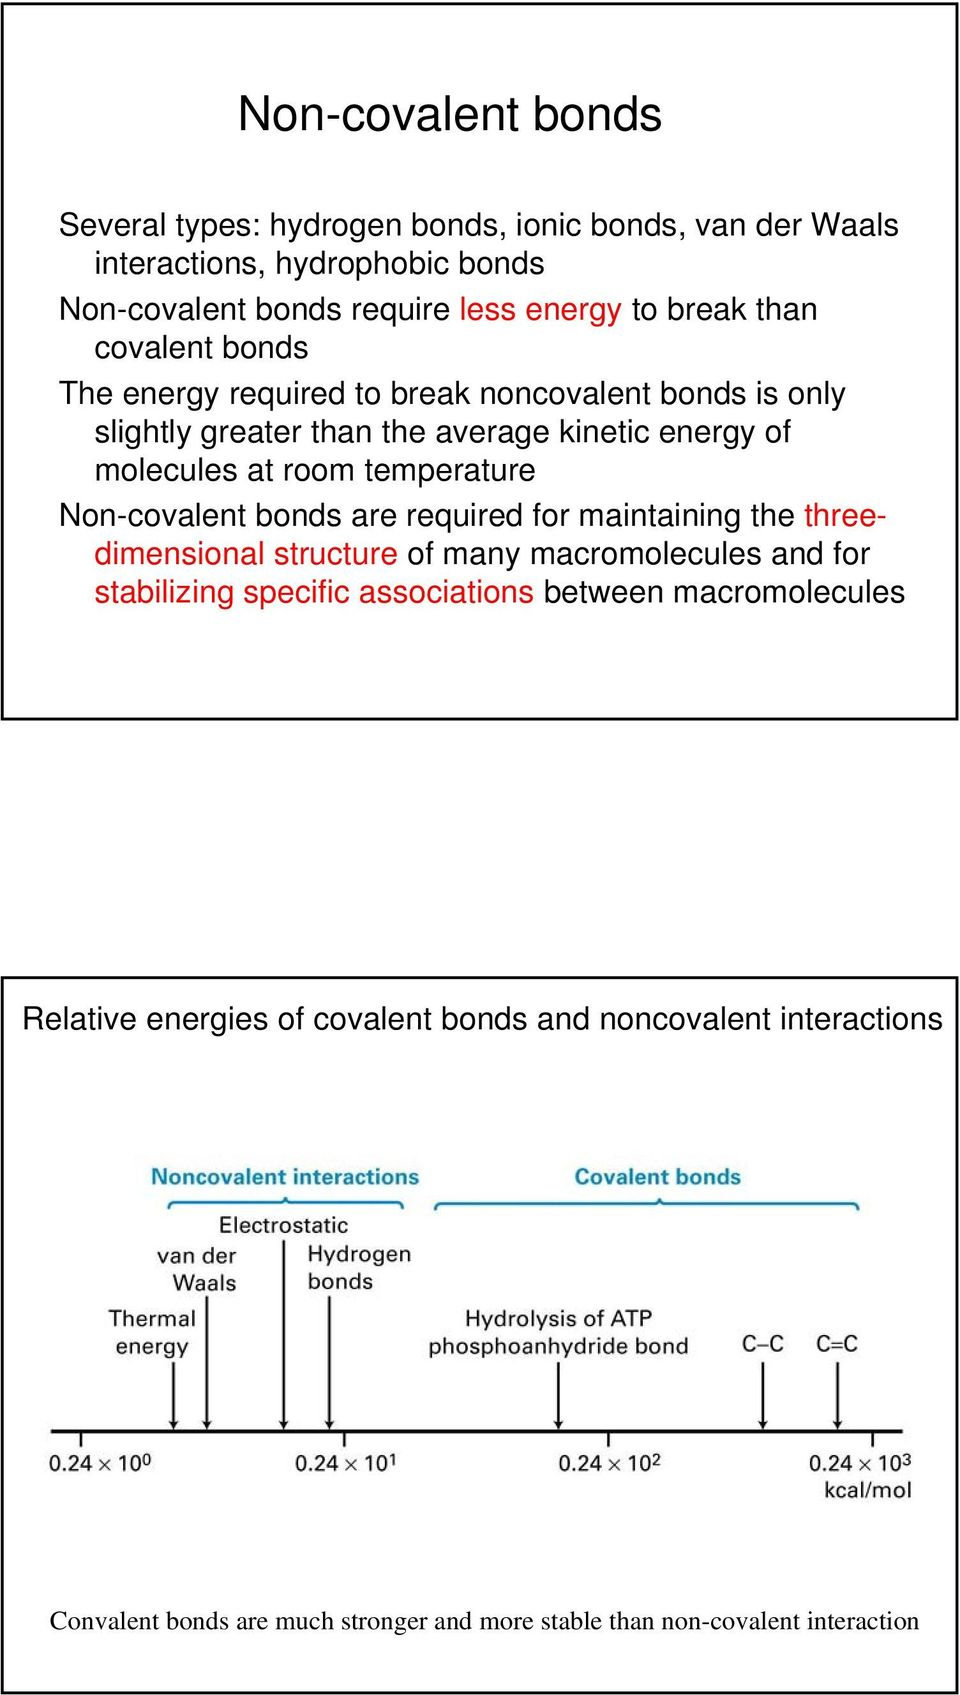 Non-covalent bonds are required for maintaining the threedimensional structure of many macromolecules and for stabilizing specific associations between